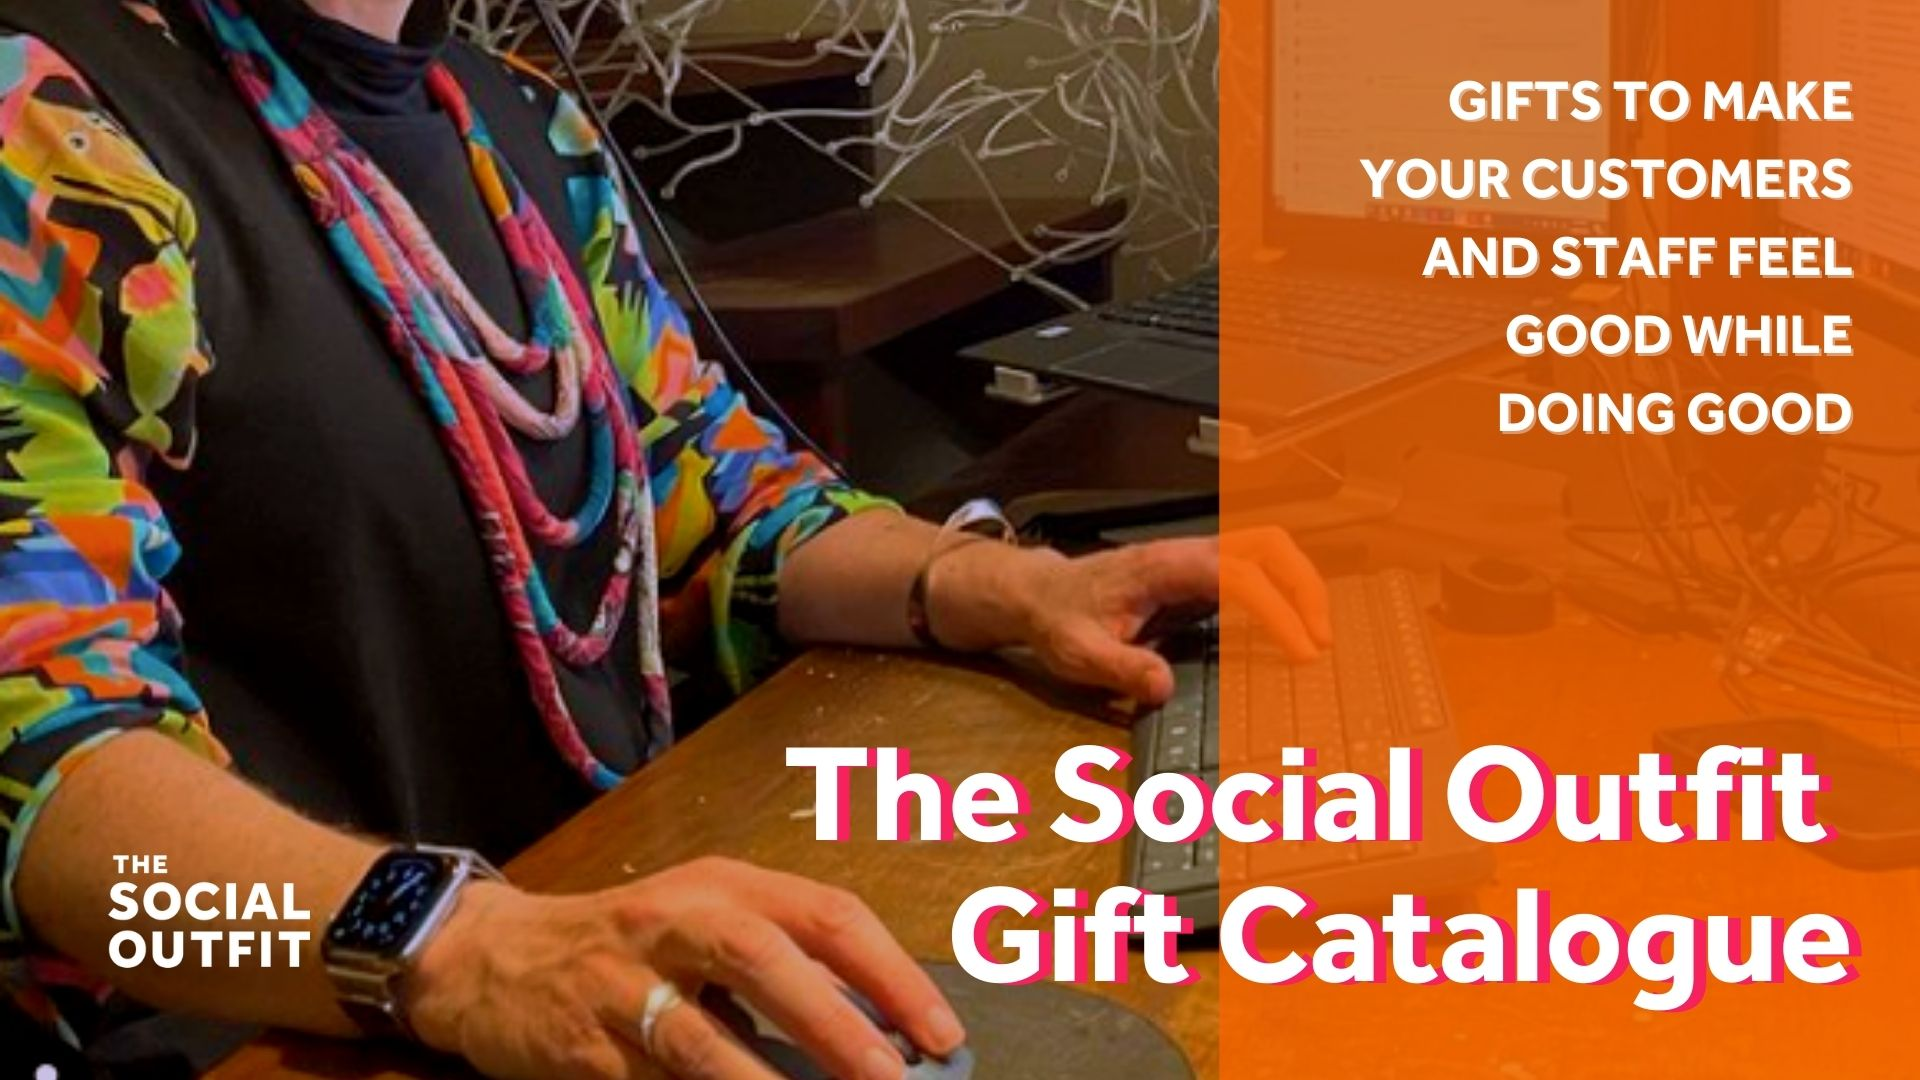 the social outfit's christmas corporate gift catalogue